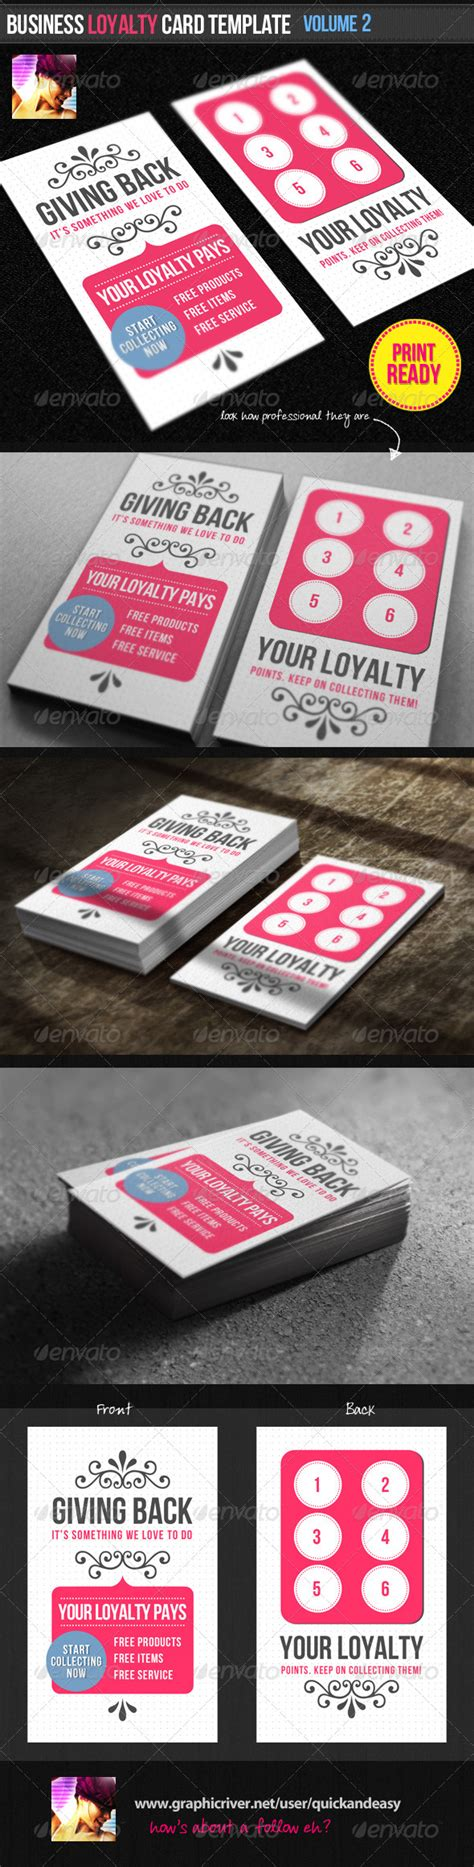 business loyalty card template vol 2 by quickandeasy